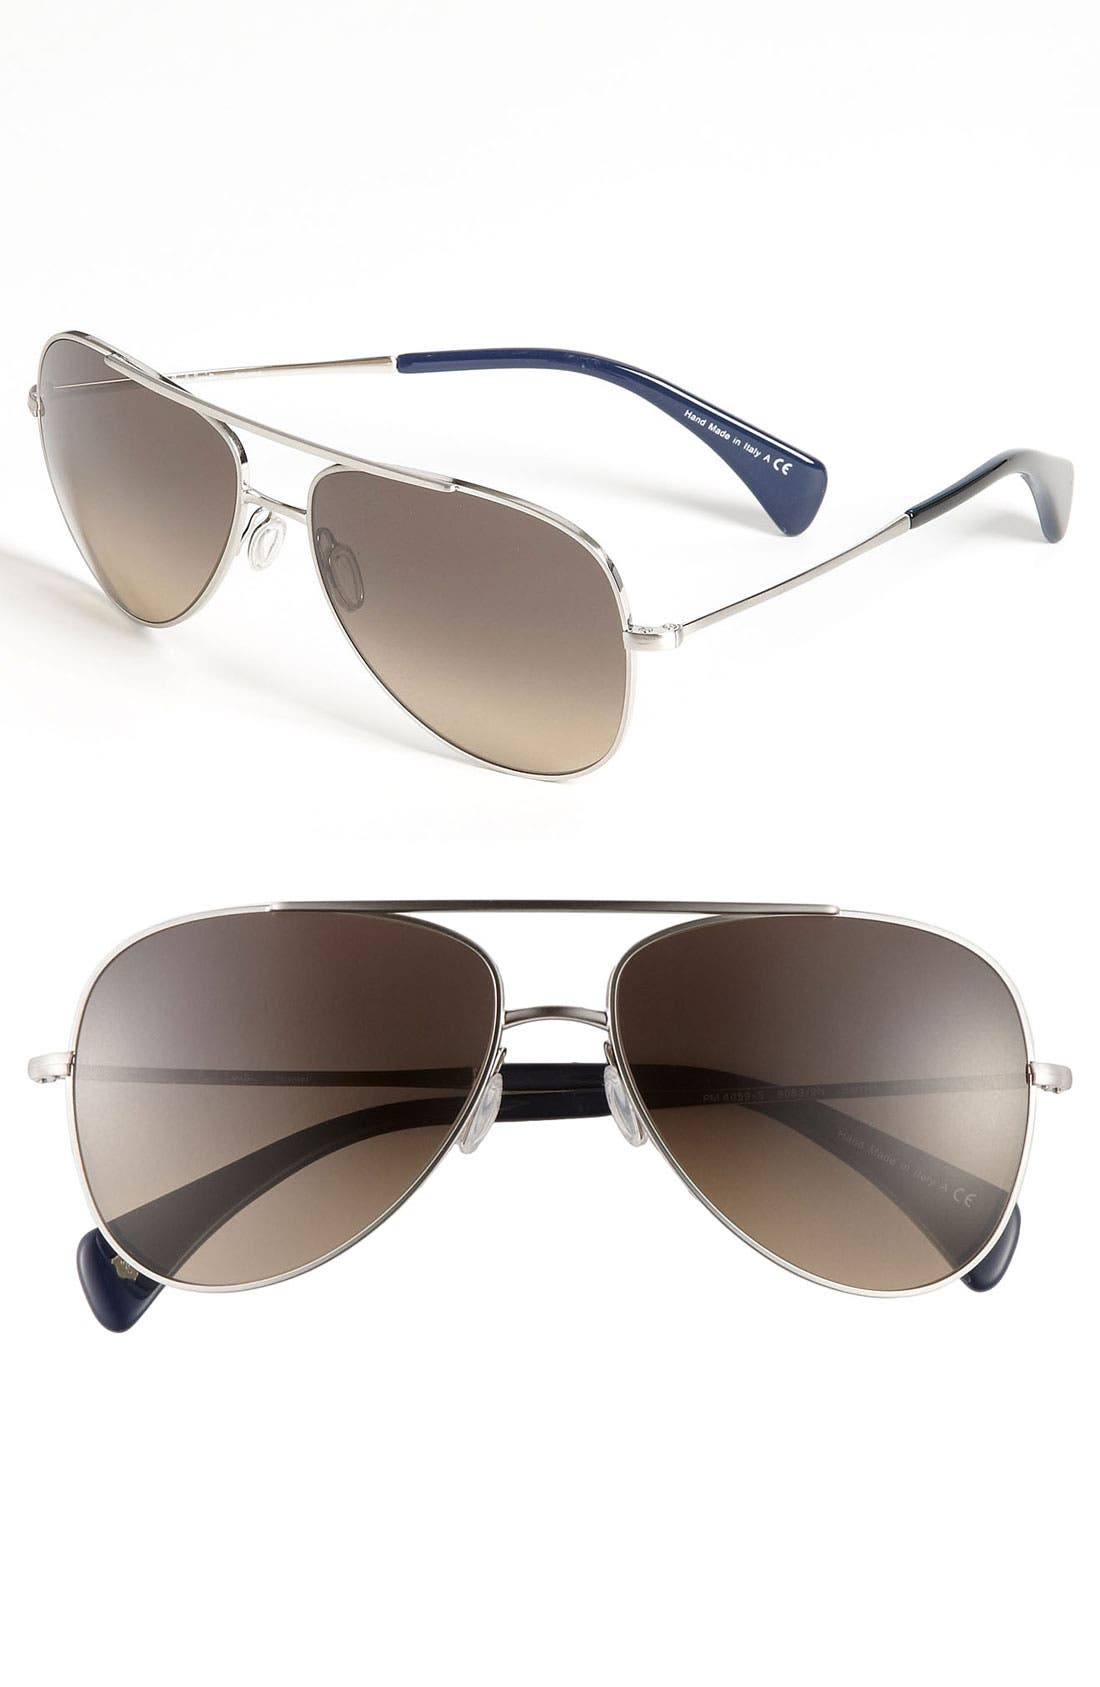 Alternate Image 1 Selected - Paul Smith 'Barrick' Polarized Aviator Sunglasses